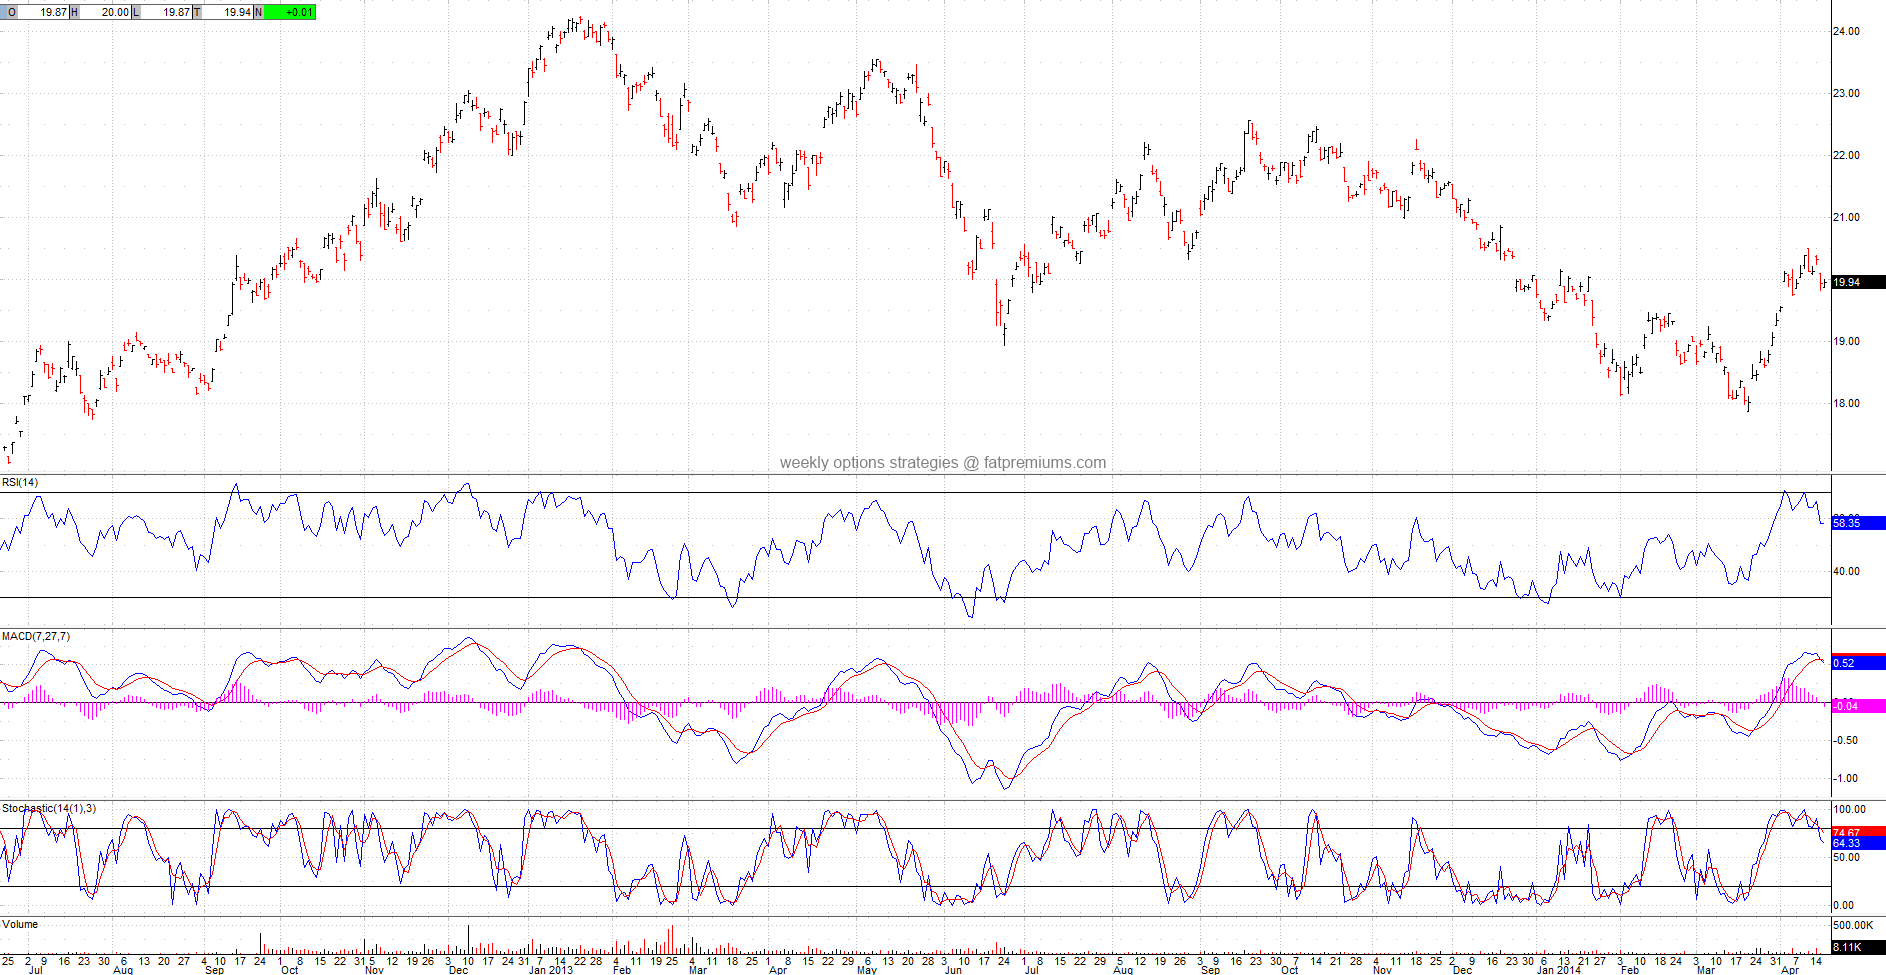 China Real Estate Guggenheim (NYSEARCA:TAO) Daily Chart (2014-04-16) Bearish